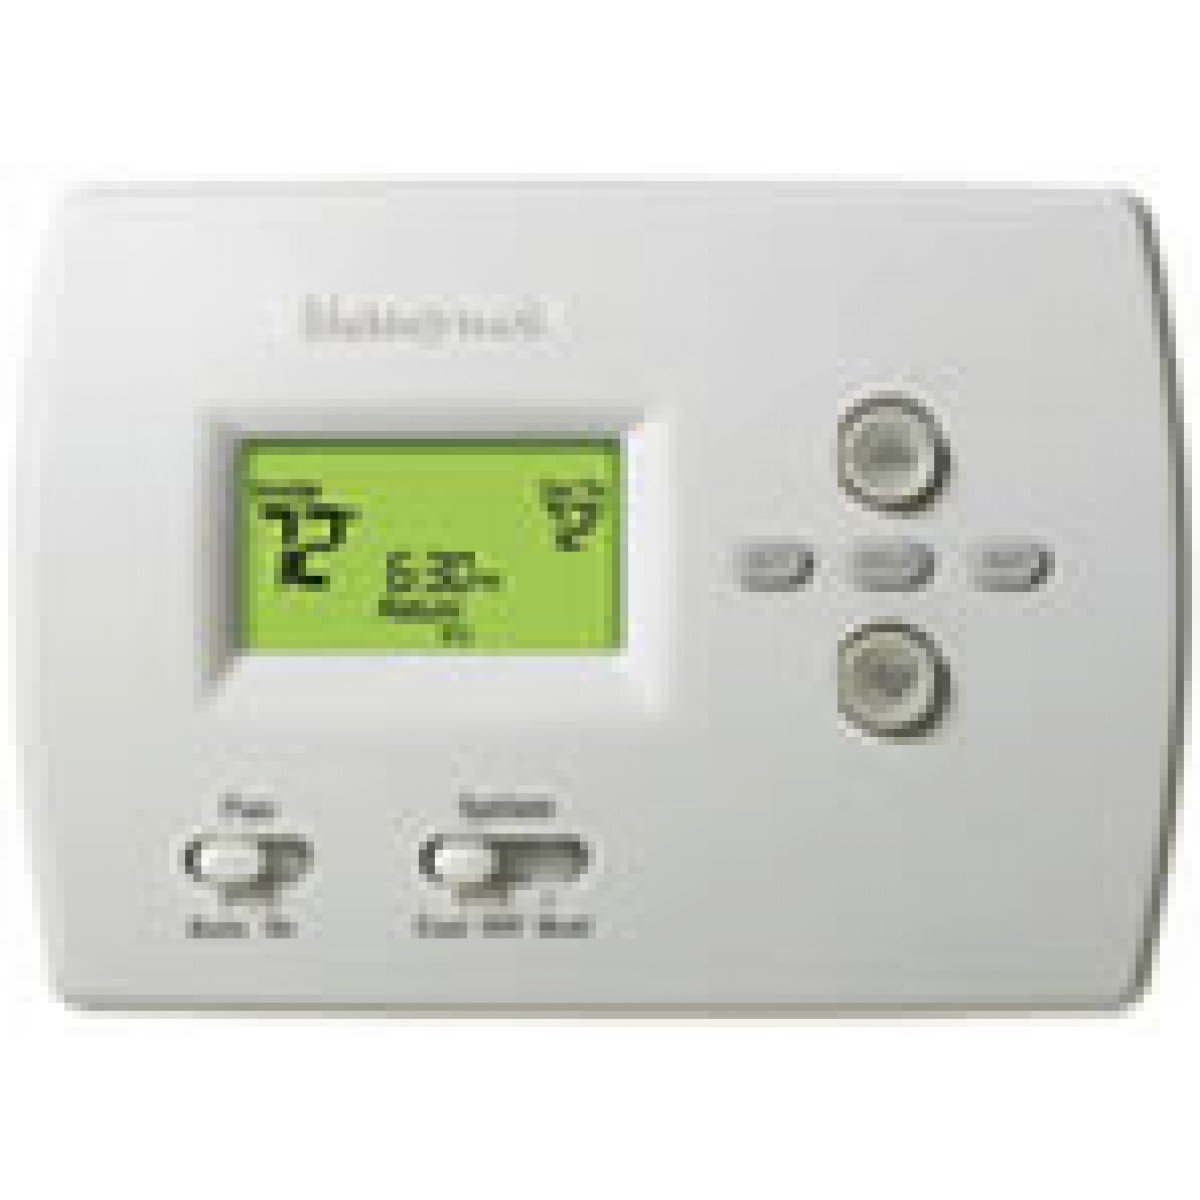 Honeywell 4000 Thermostat Wiring Diagram | Wiring Diagram - Honeywell Thermostat Wiring Diagram 3 Wire